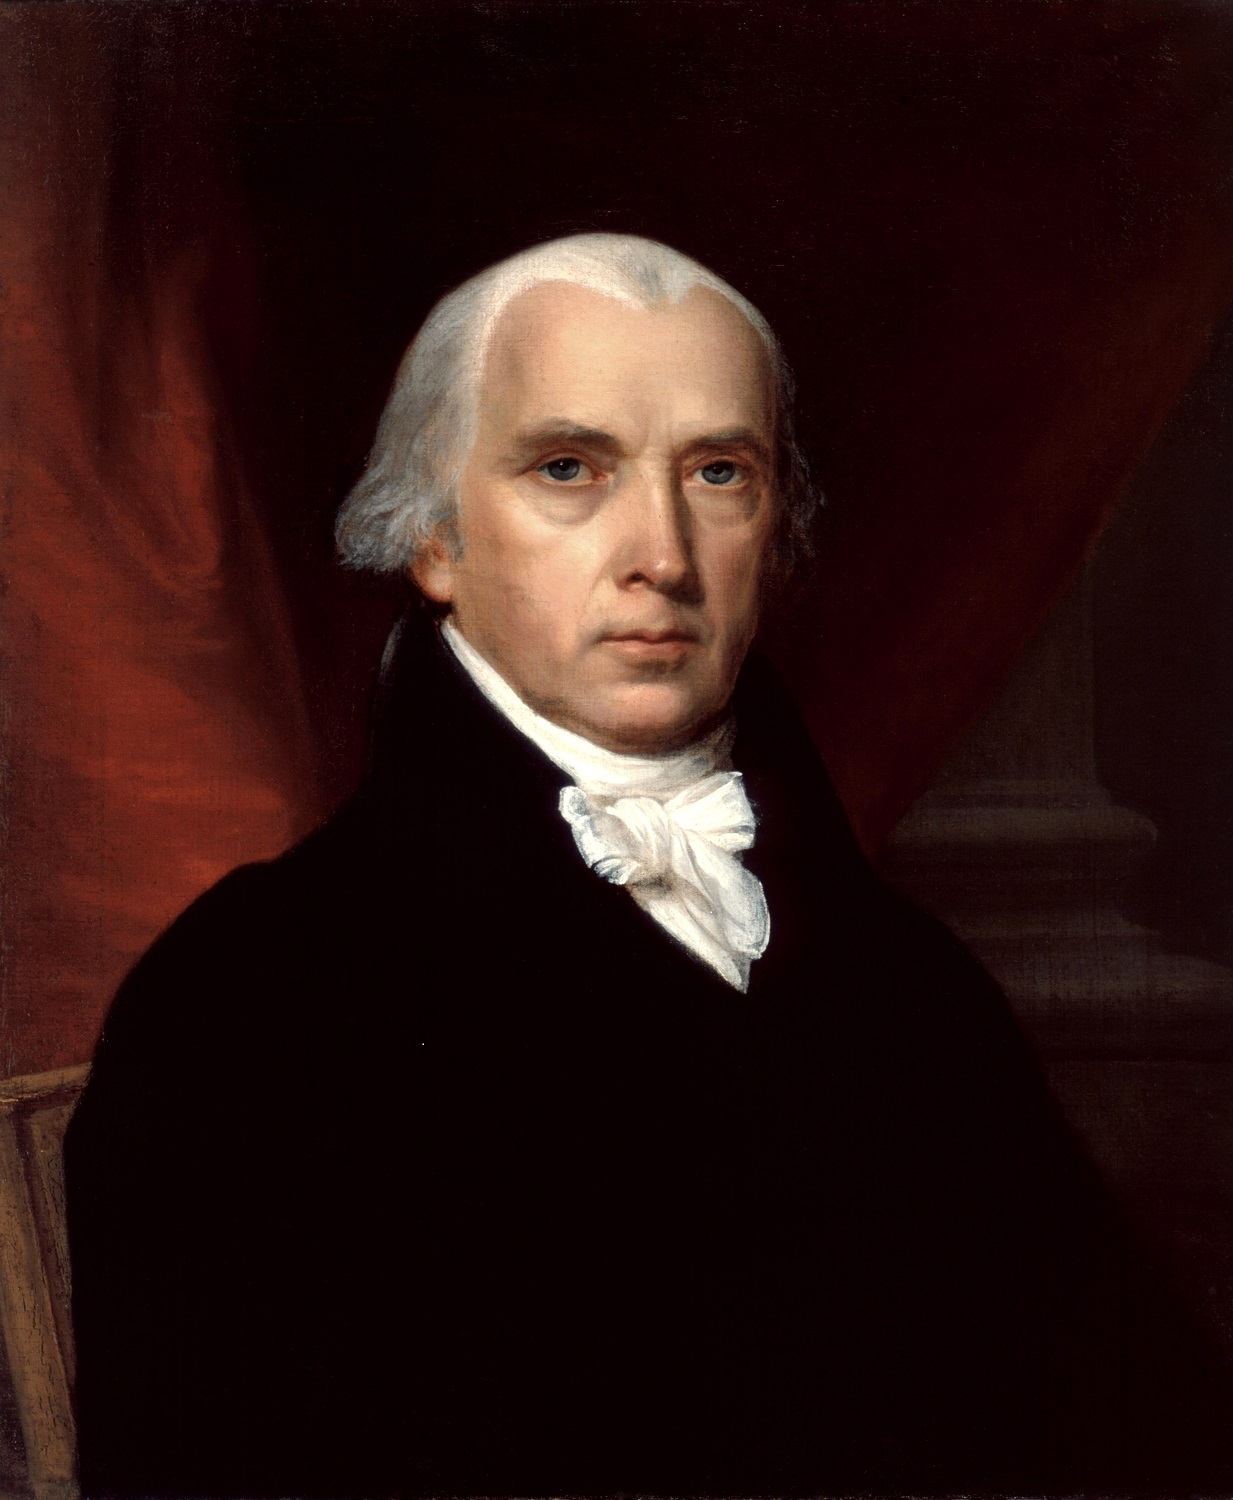 James_Madison small.jpg